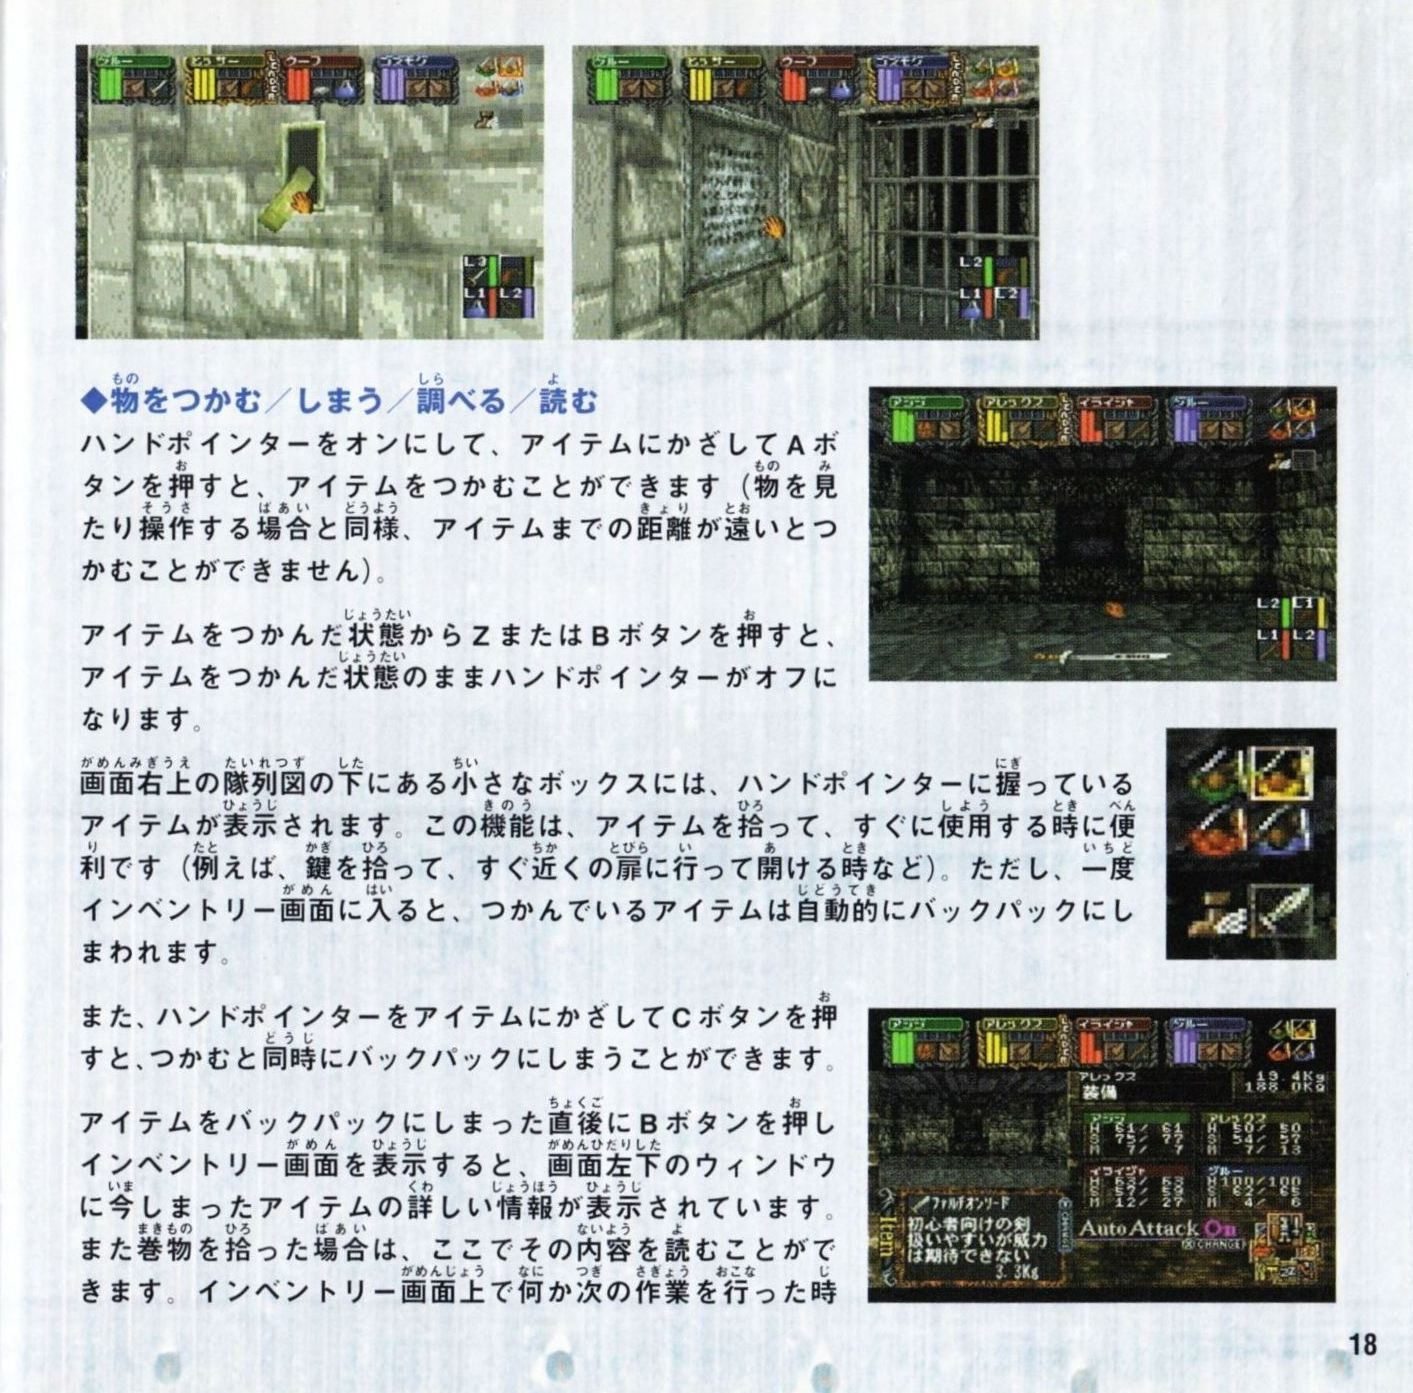 Game - Dungeon Master Nexus - JP - Sega Saturn - Booklet - Page 019 - Scan